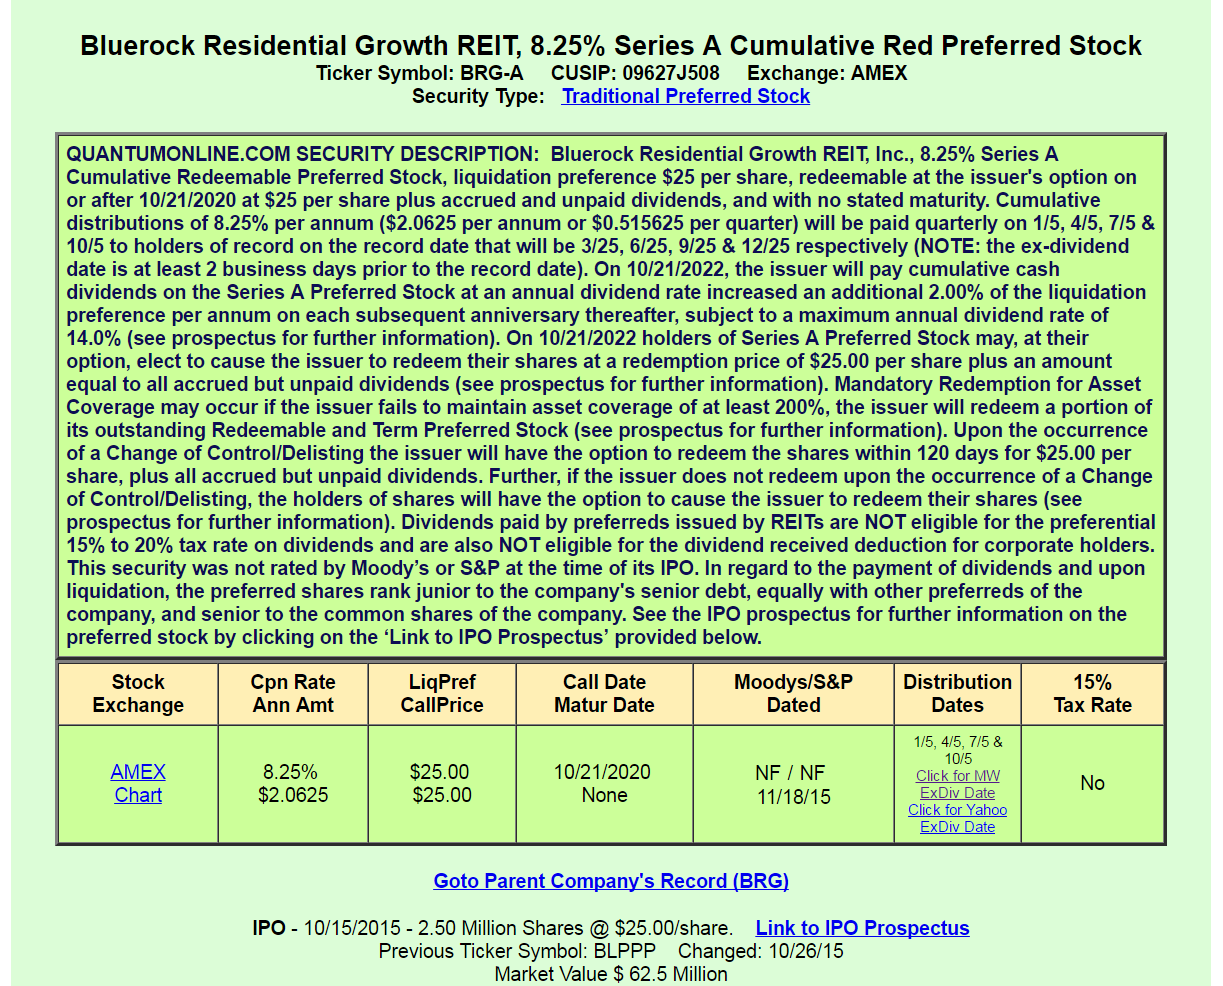 Bluerock Residential Growth Reit A View From The Perspective Of A